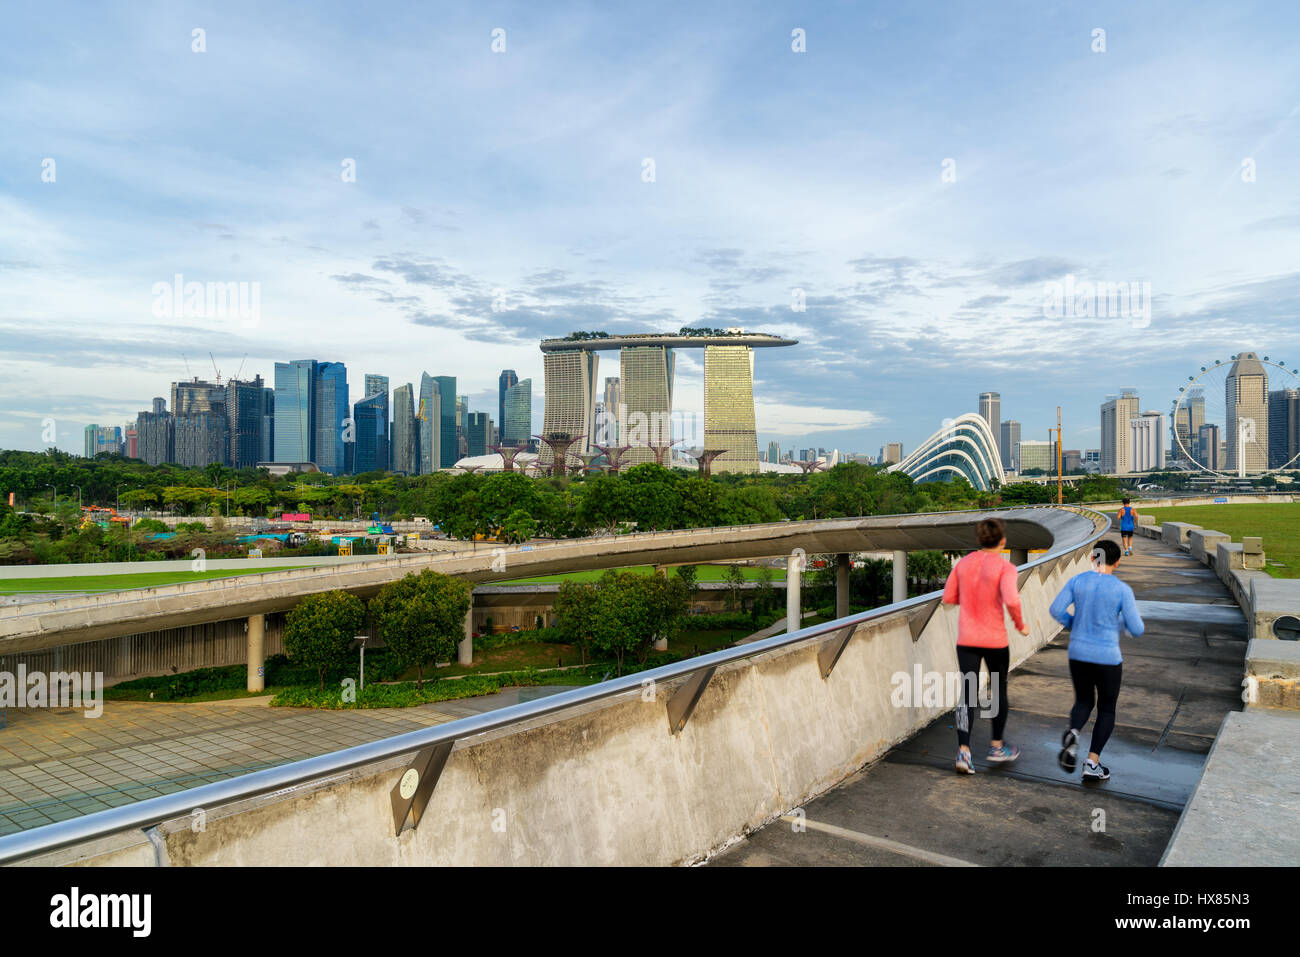 People jogging at morning in Singapore. Singapore Downtown Core in the background. Stock Photo